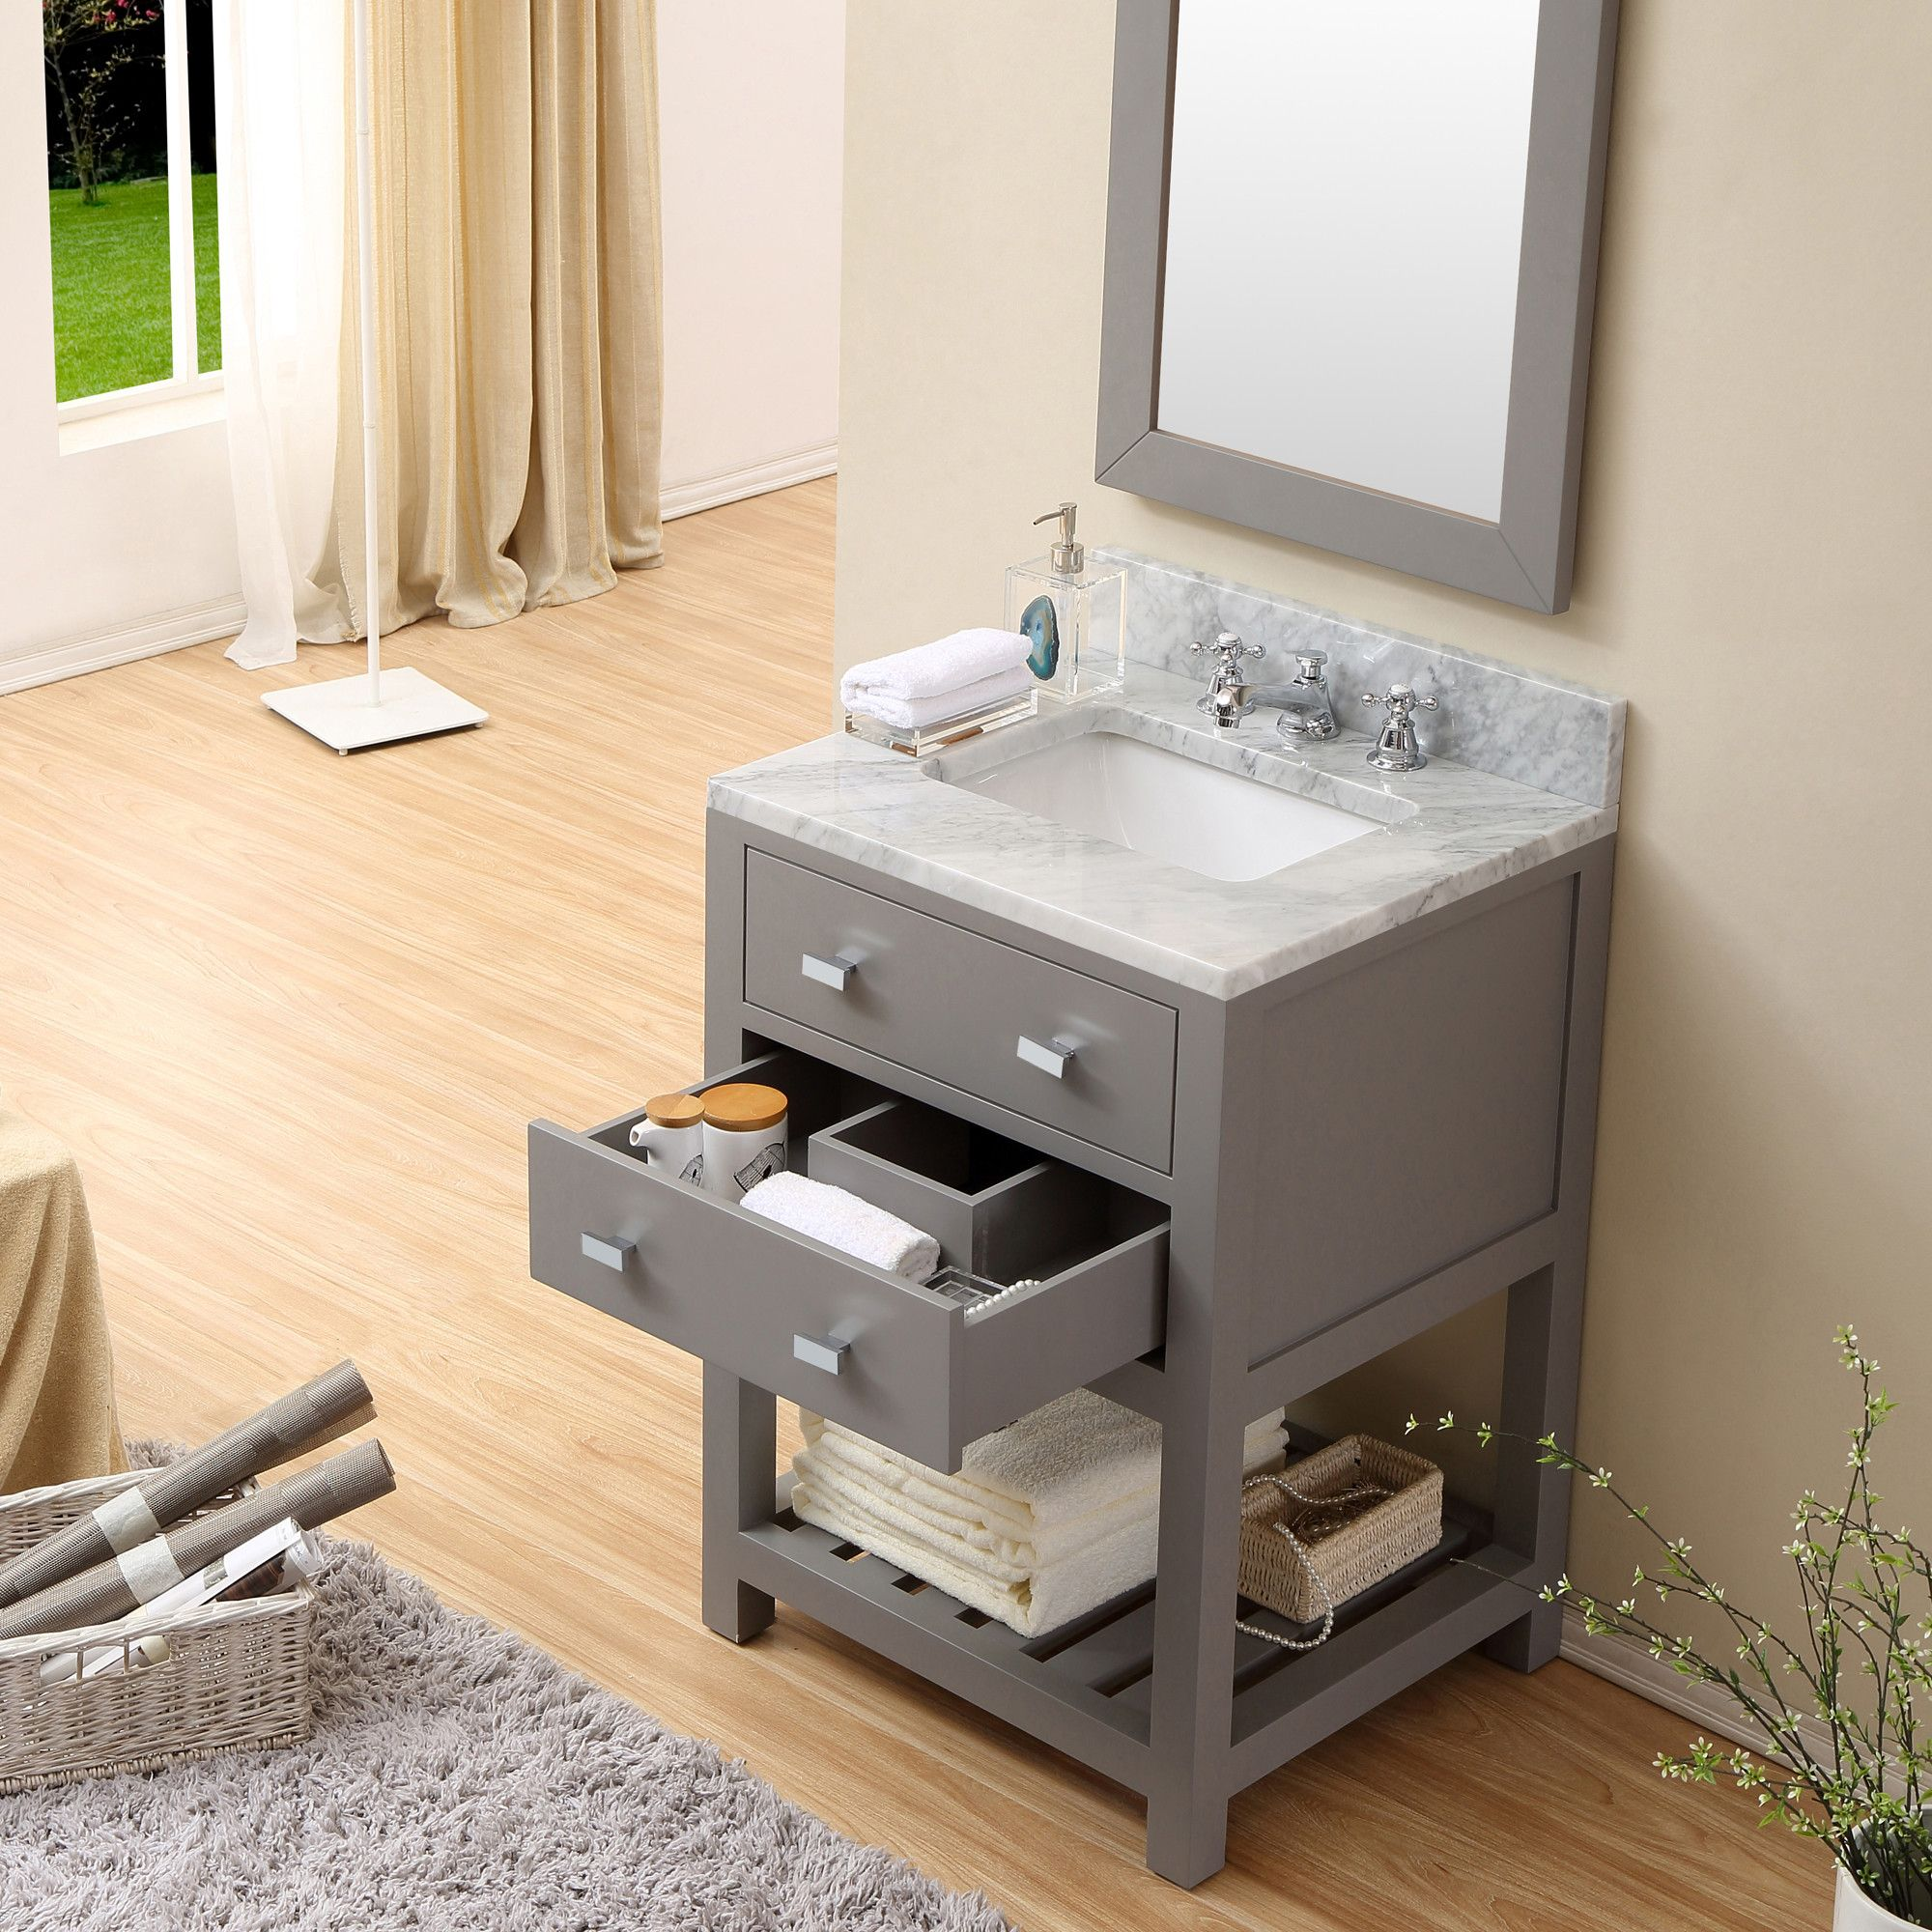 Cadale 24 inch Gay Finish Single Sink Bathroom Vanity